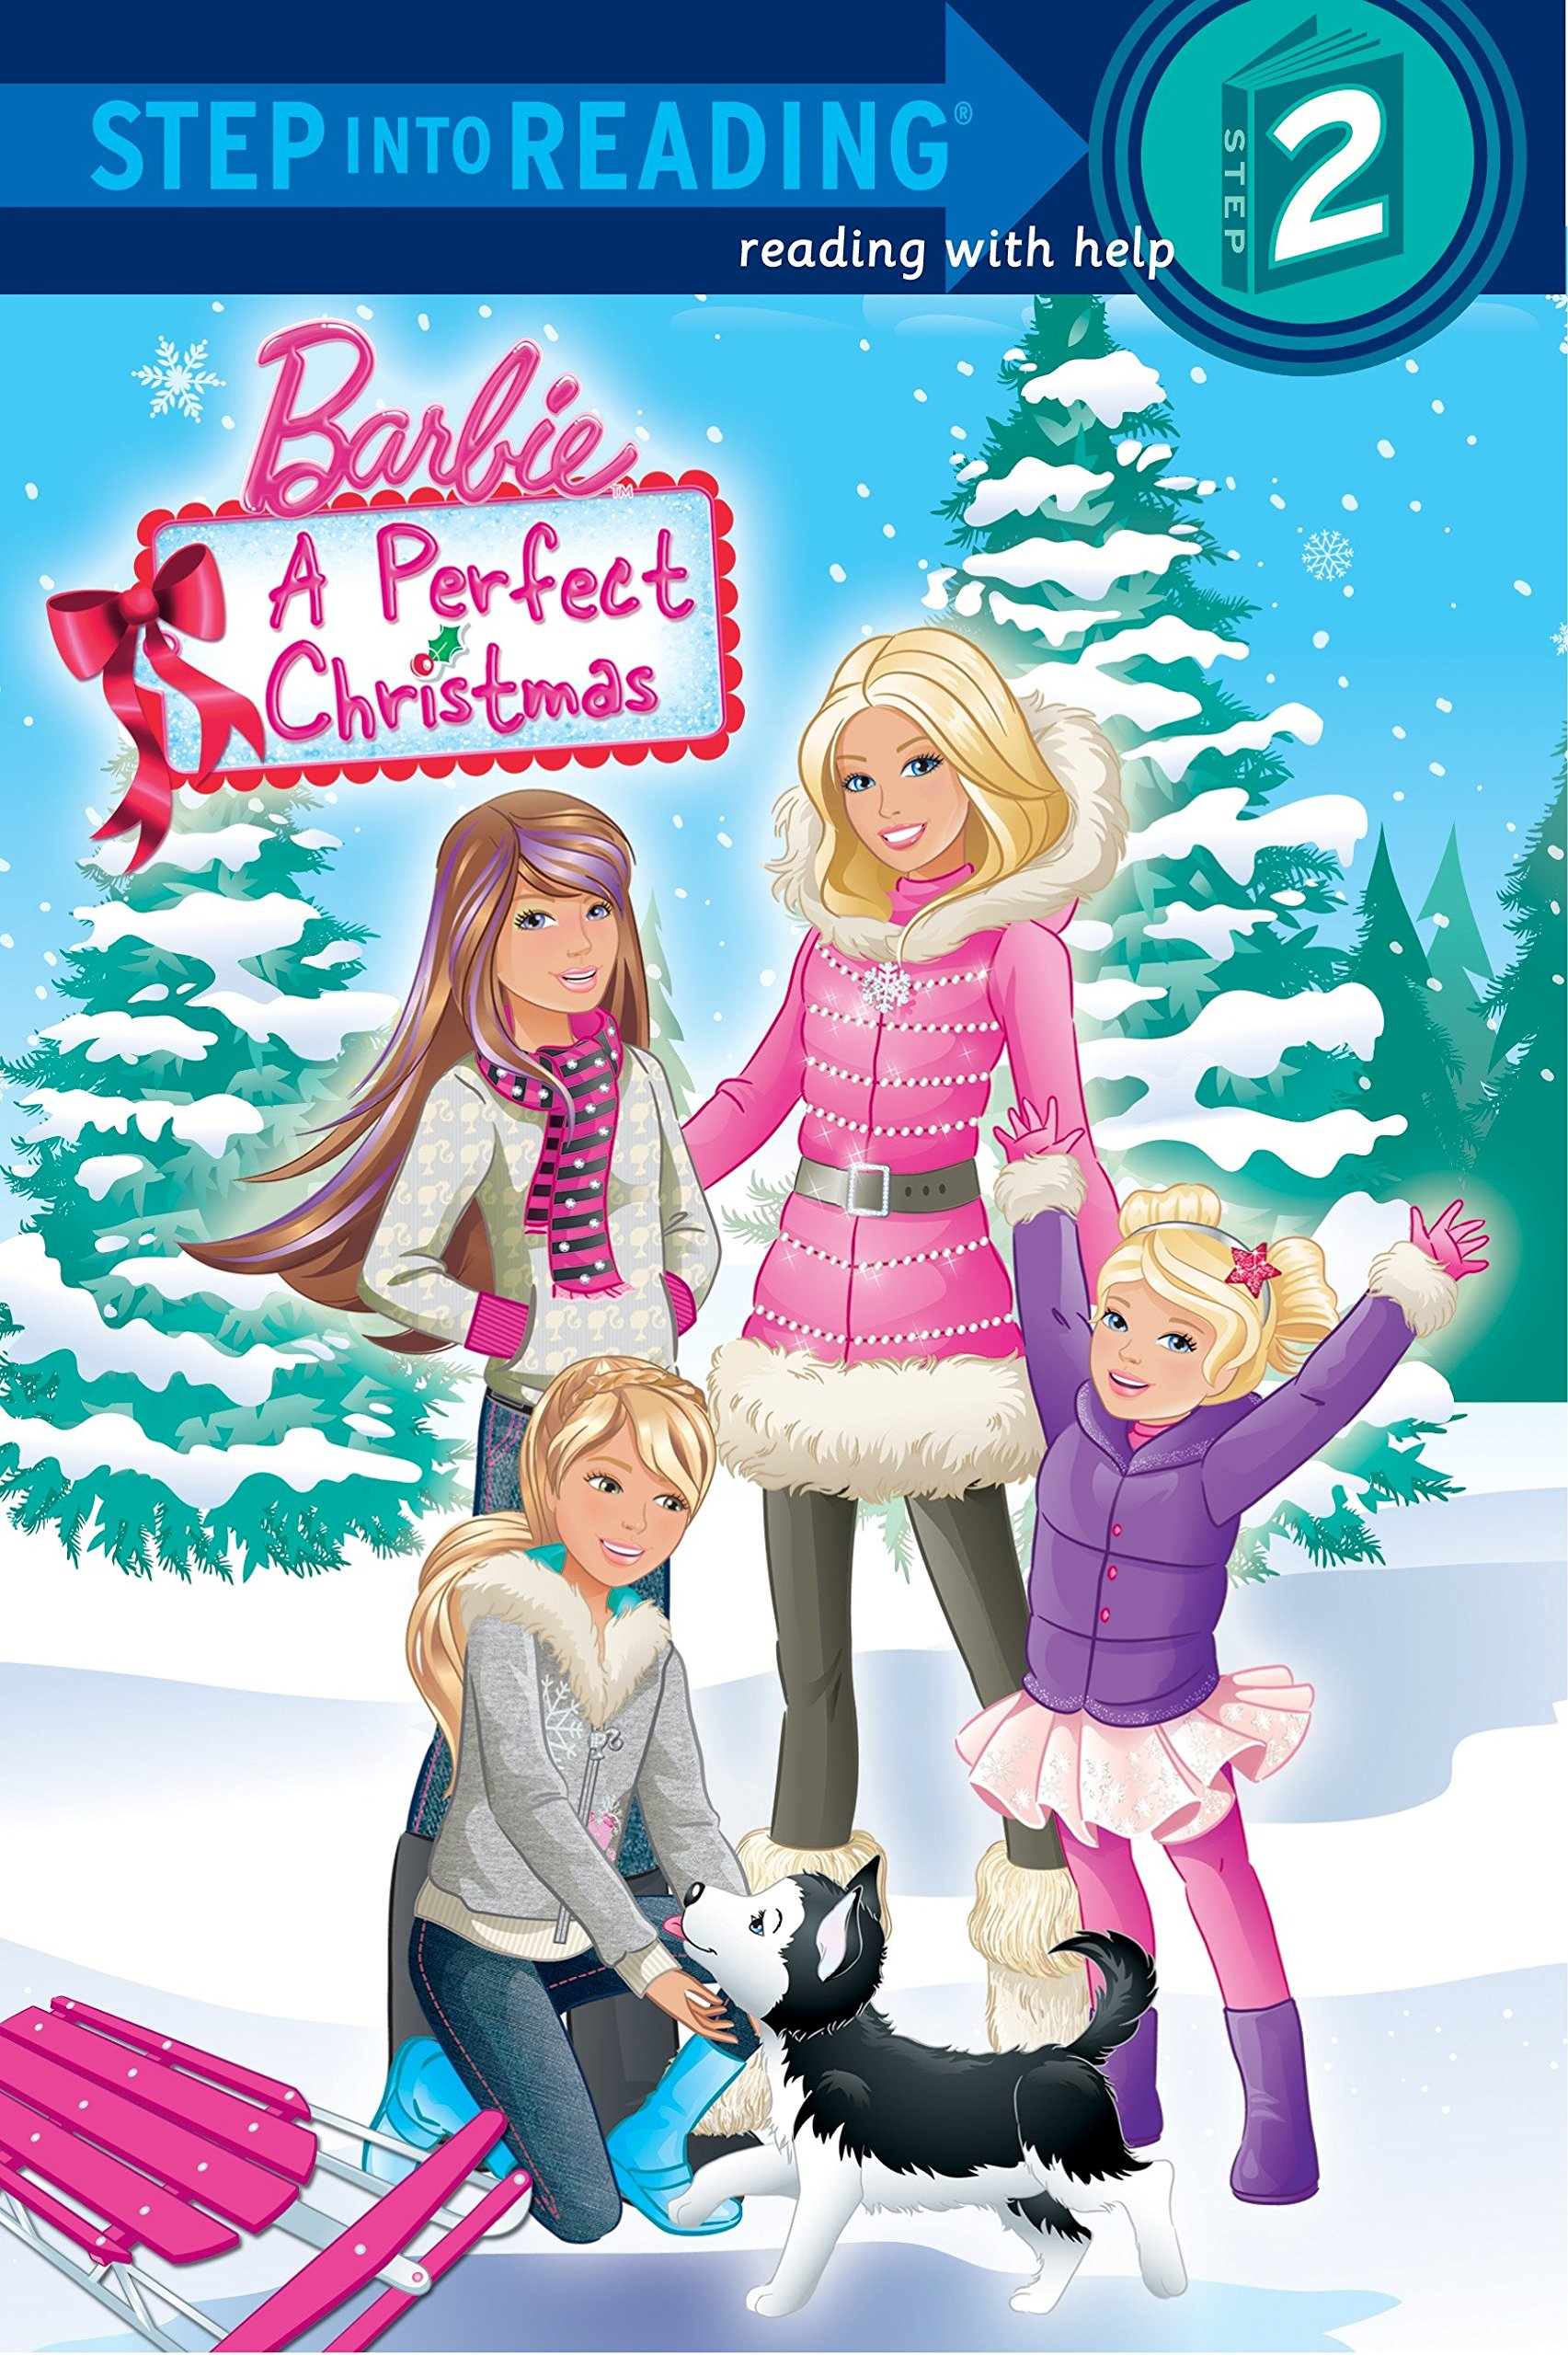 A Perfect Christmas (Barbie) (Step into Reading) ebook